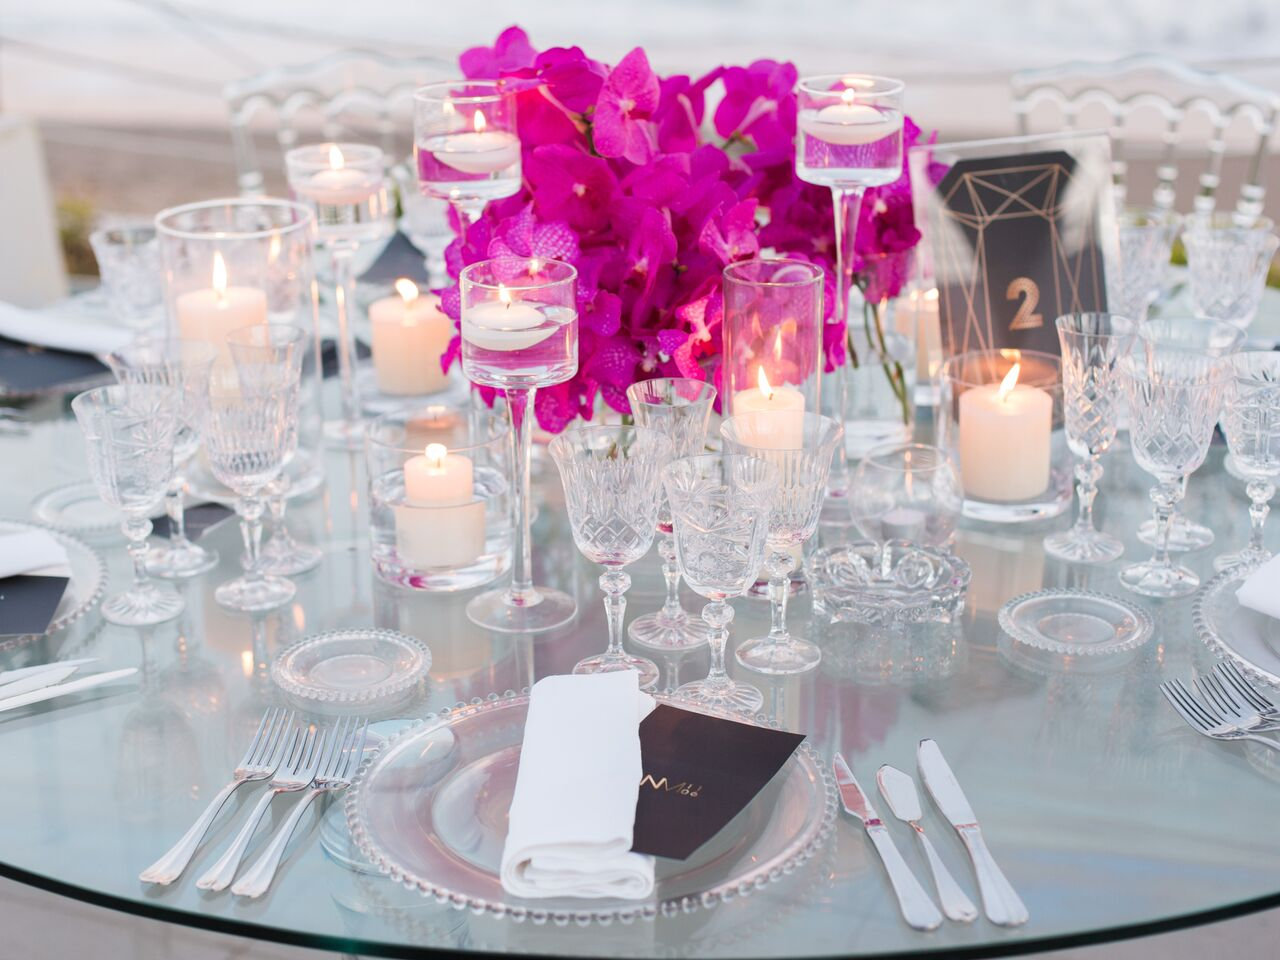 Si-Quiero-Wedding-Planner-By-Sira-Antequera-N-M-23